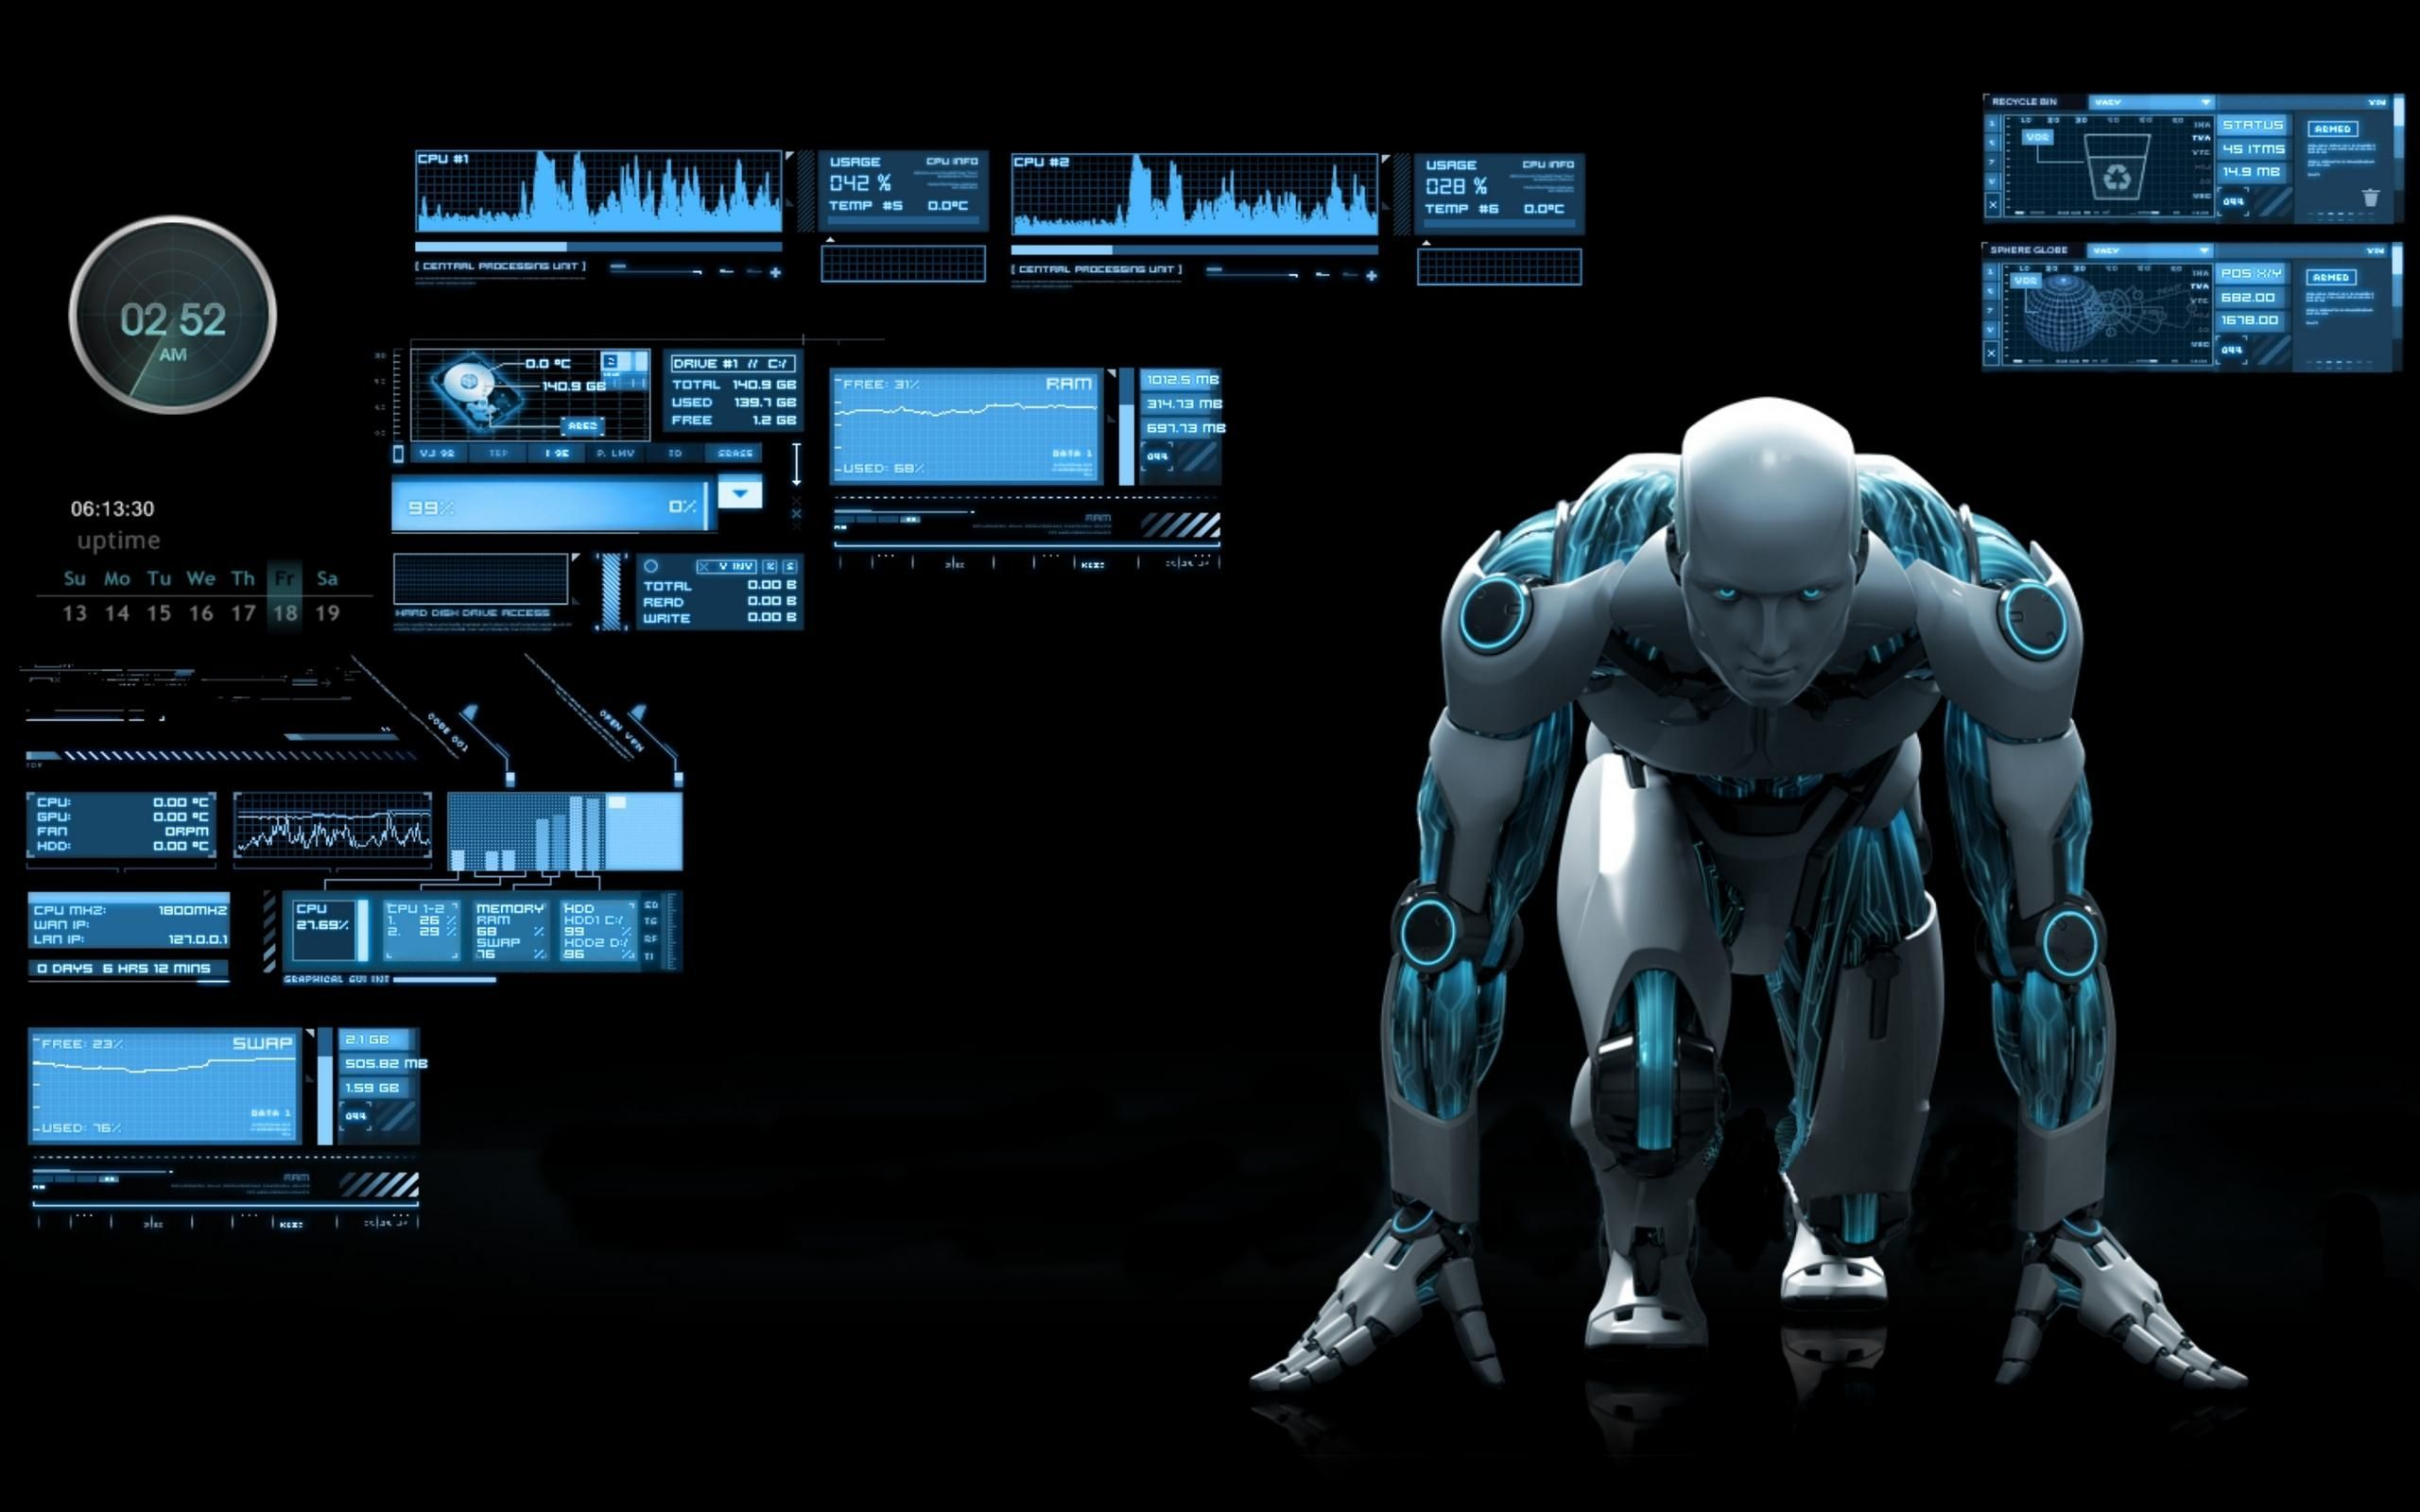 Future Technology Hd Wallpapers Top Free Future Technology